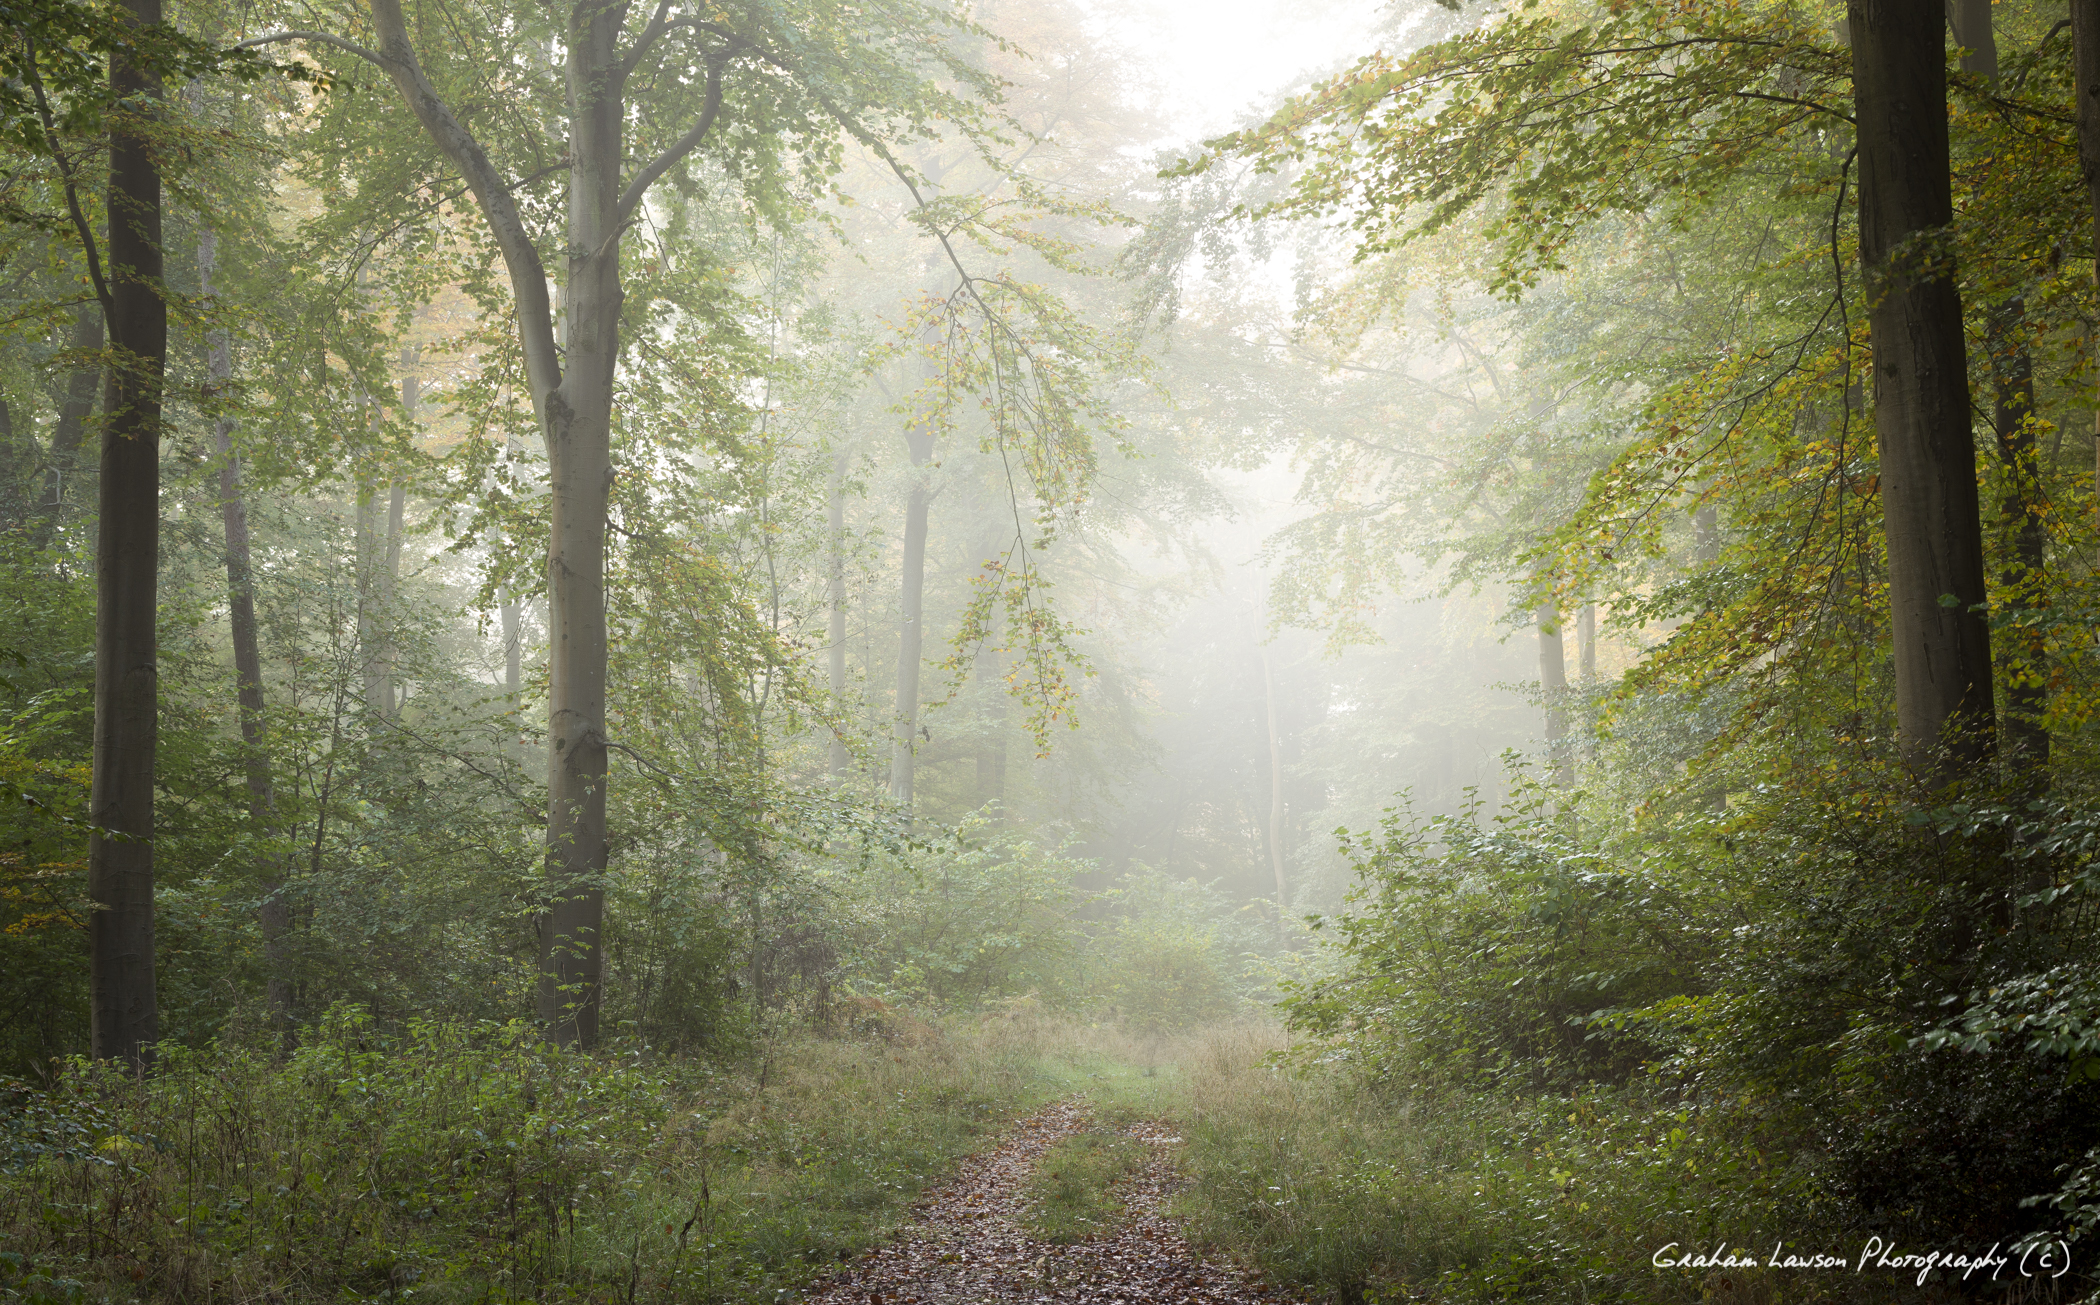 Into the Misty Wood